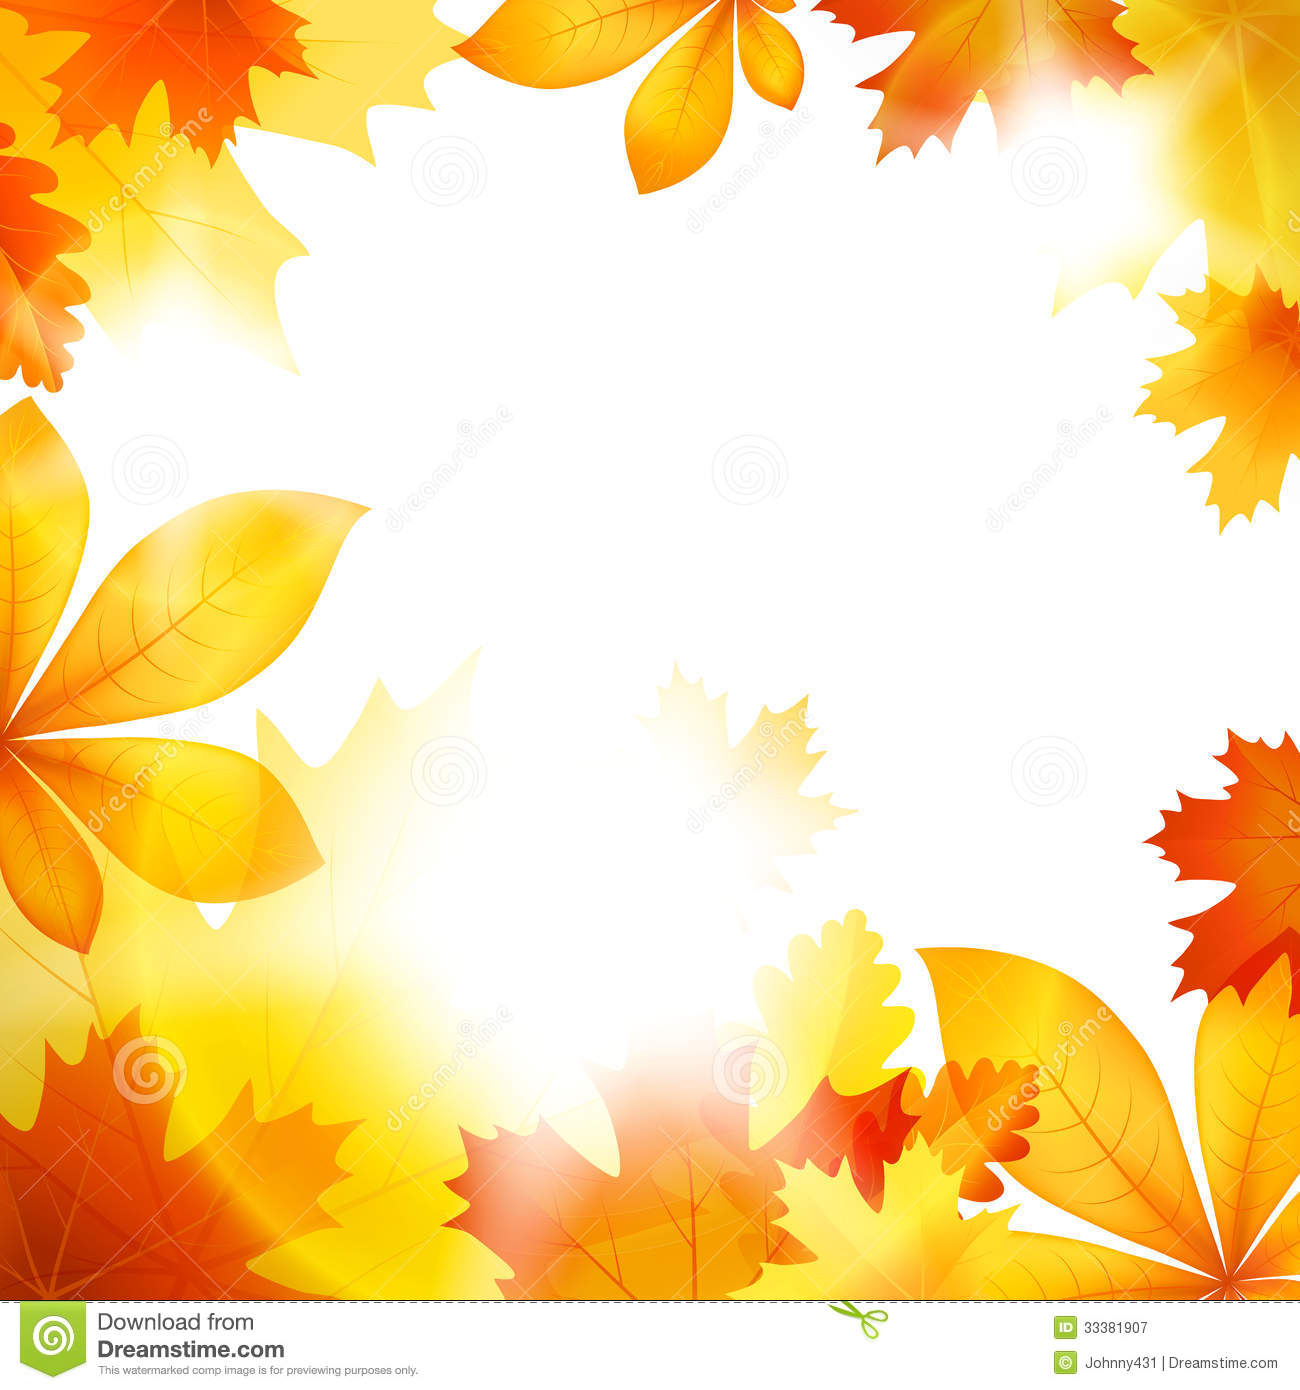 Purple Falling Circles Wallpaper Autumn Leaf Fall Stock Vector Image Of Leaves Garden